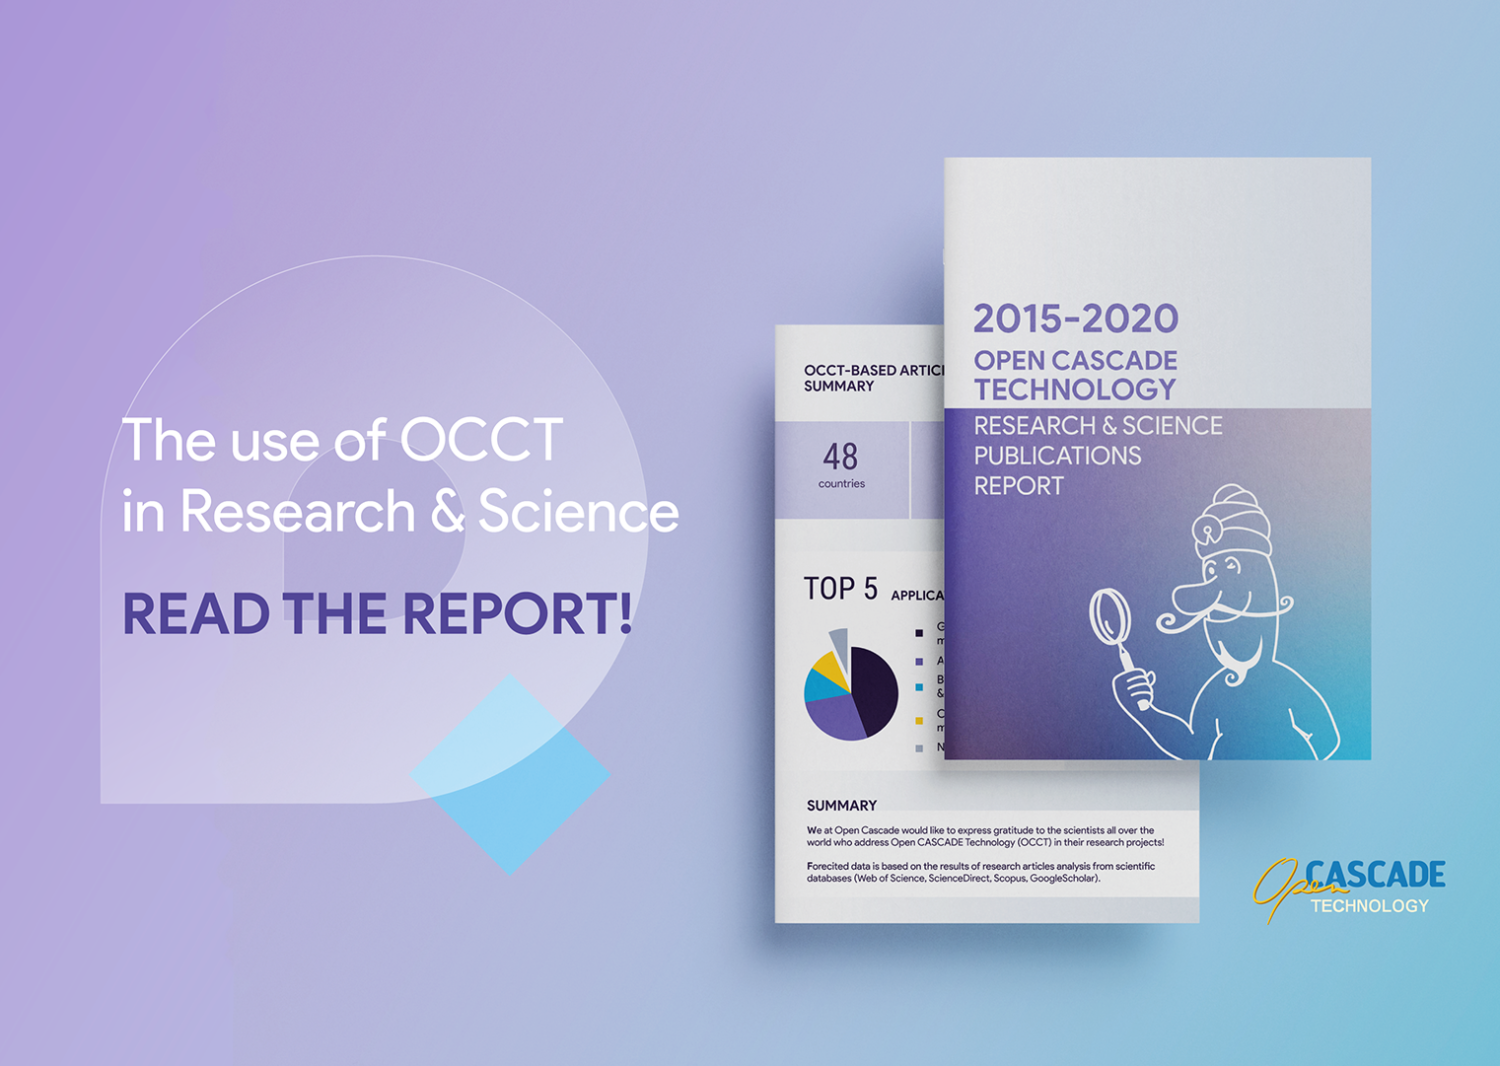 OCCT Research & Science Publications Report